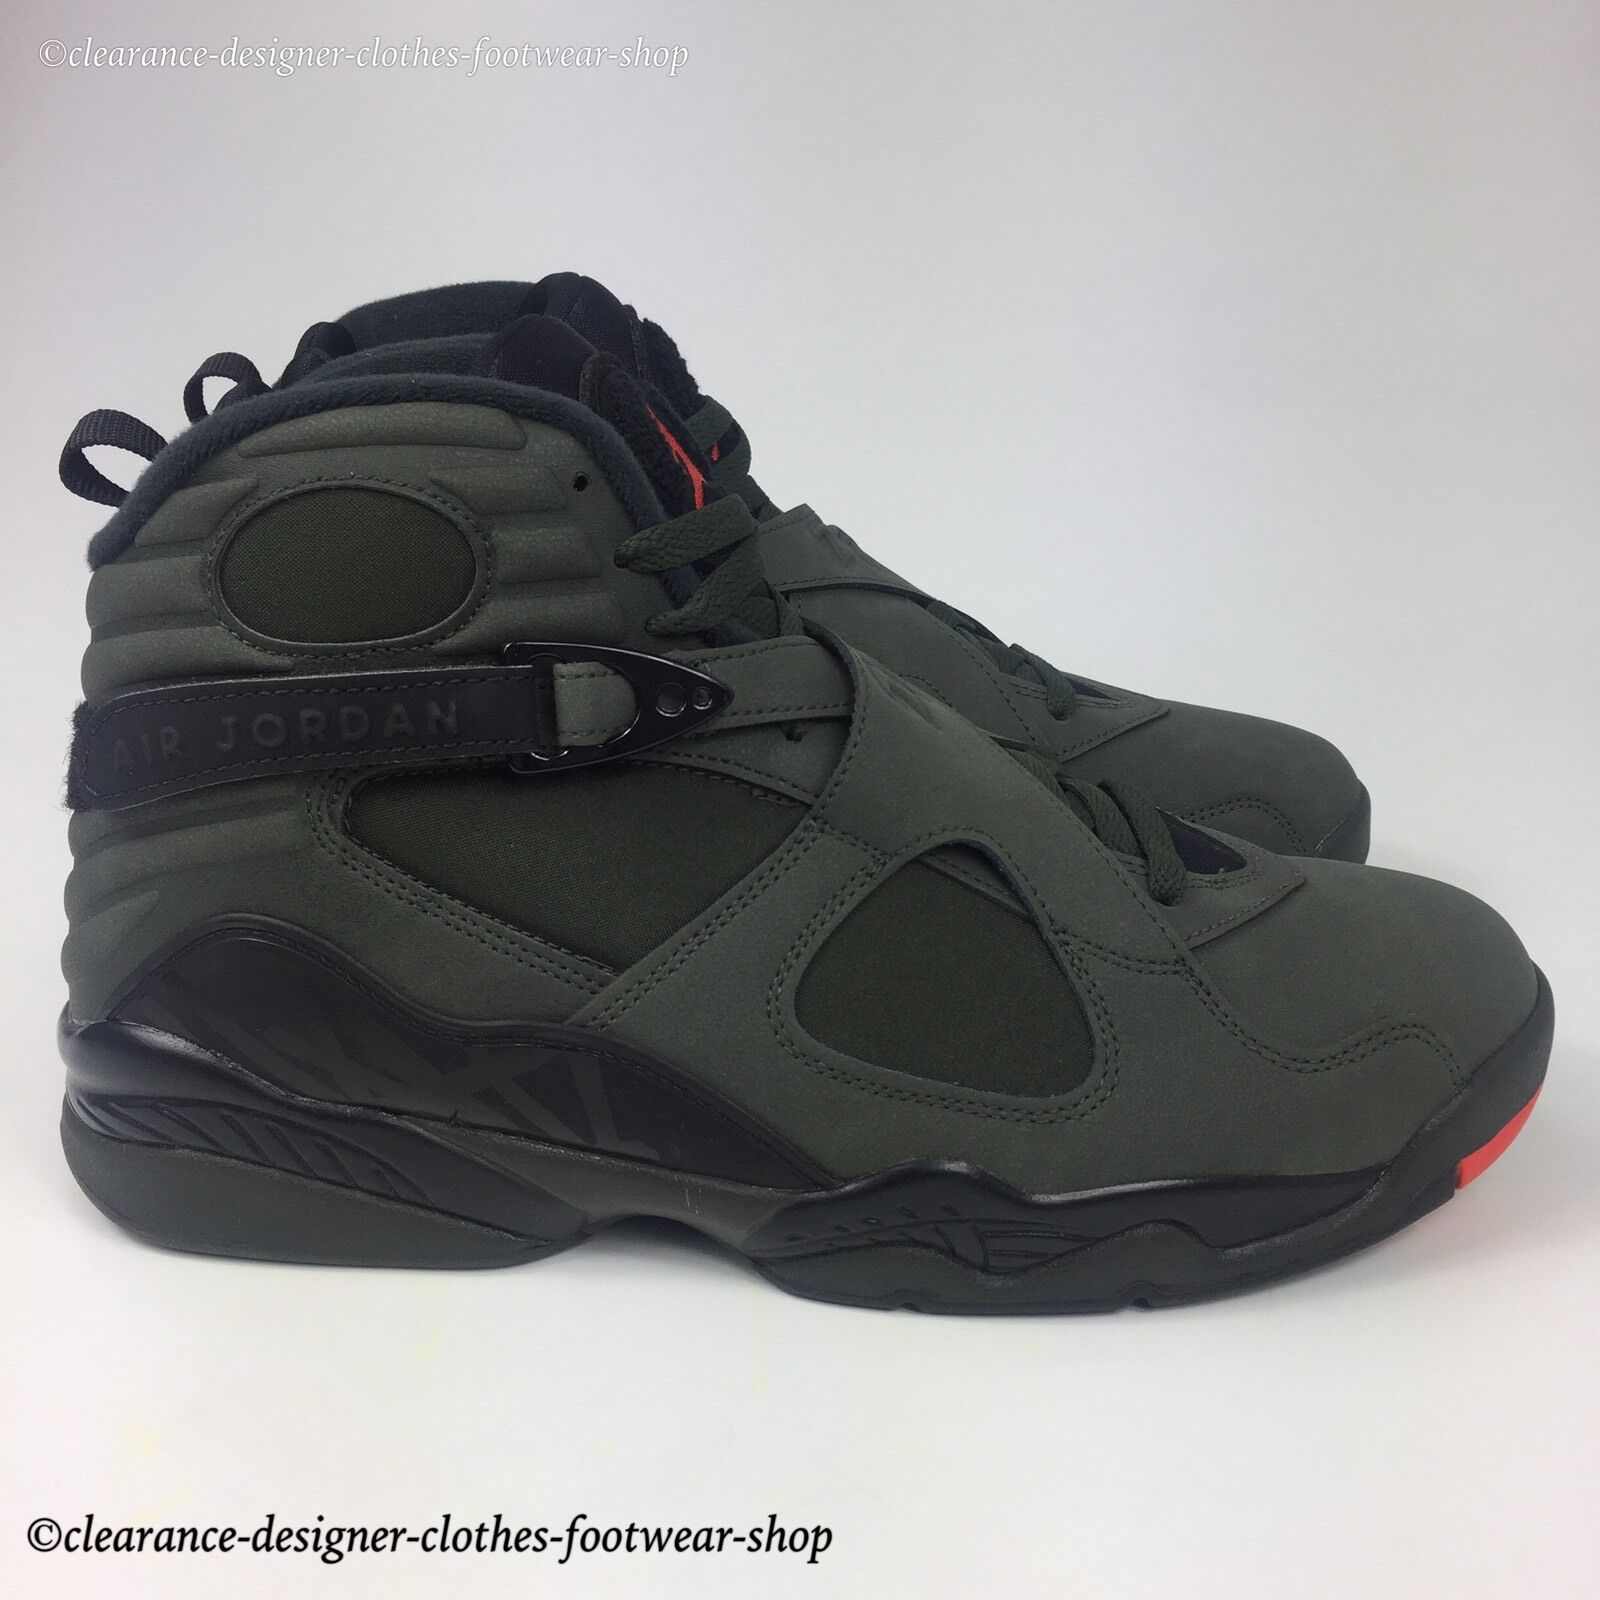 c1191c4ae0a23a Nike Air Jordan 8 Retro VIII Take Flight Undefeated Sequoia Men Aj8 305381-305  UK 10 for sale online